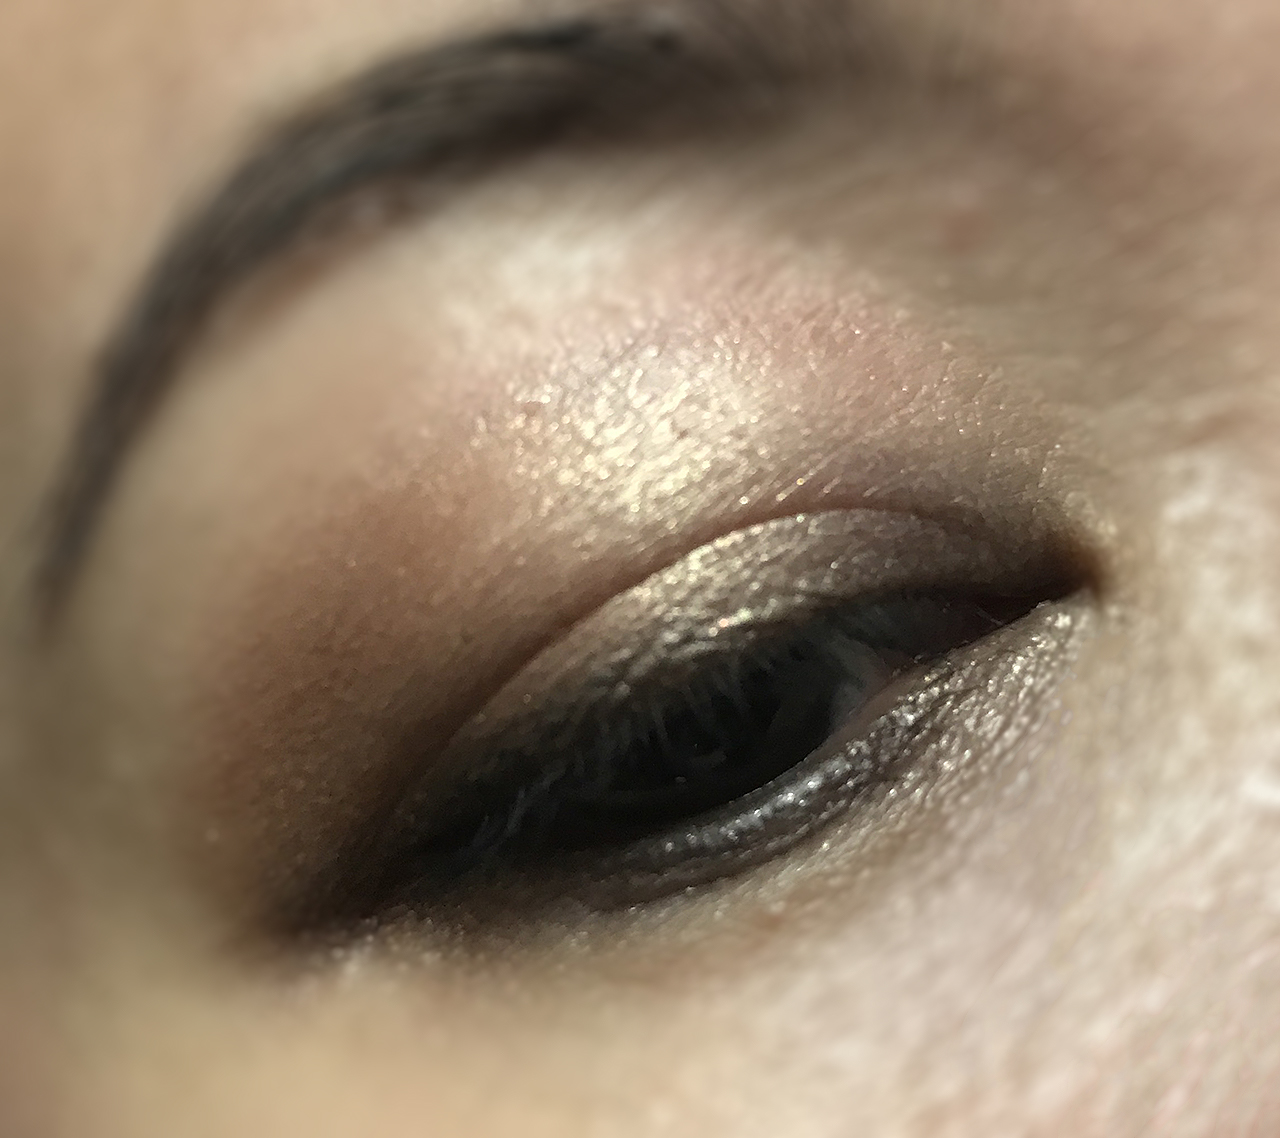 Tom Ford Acqua Metal Shadow EOTD